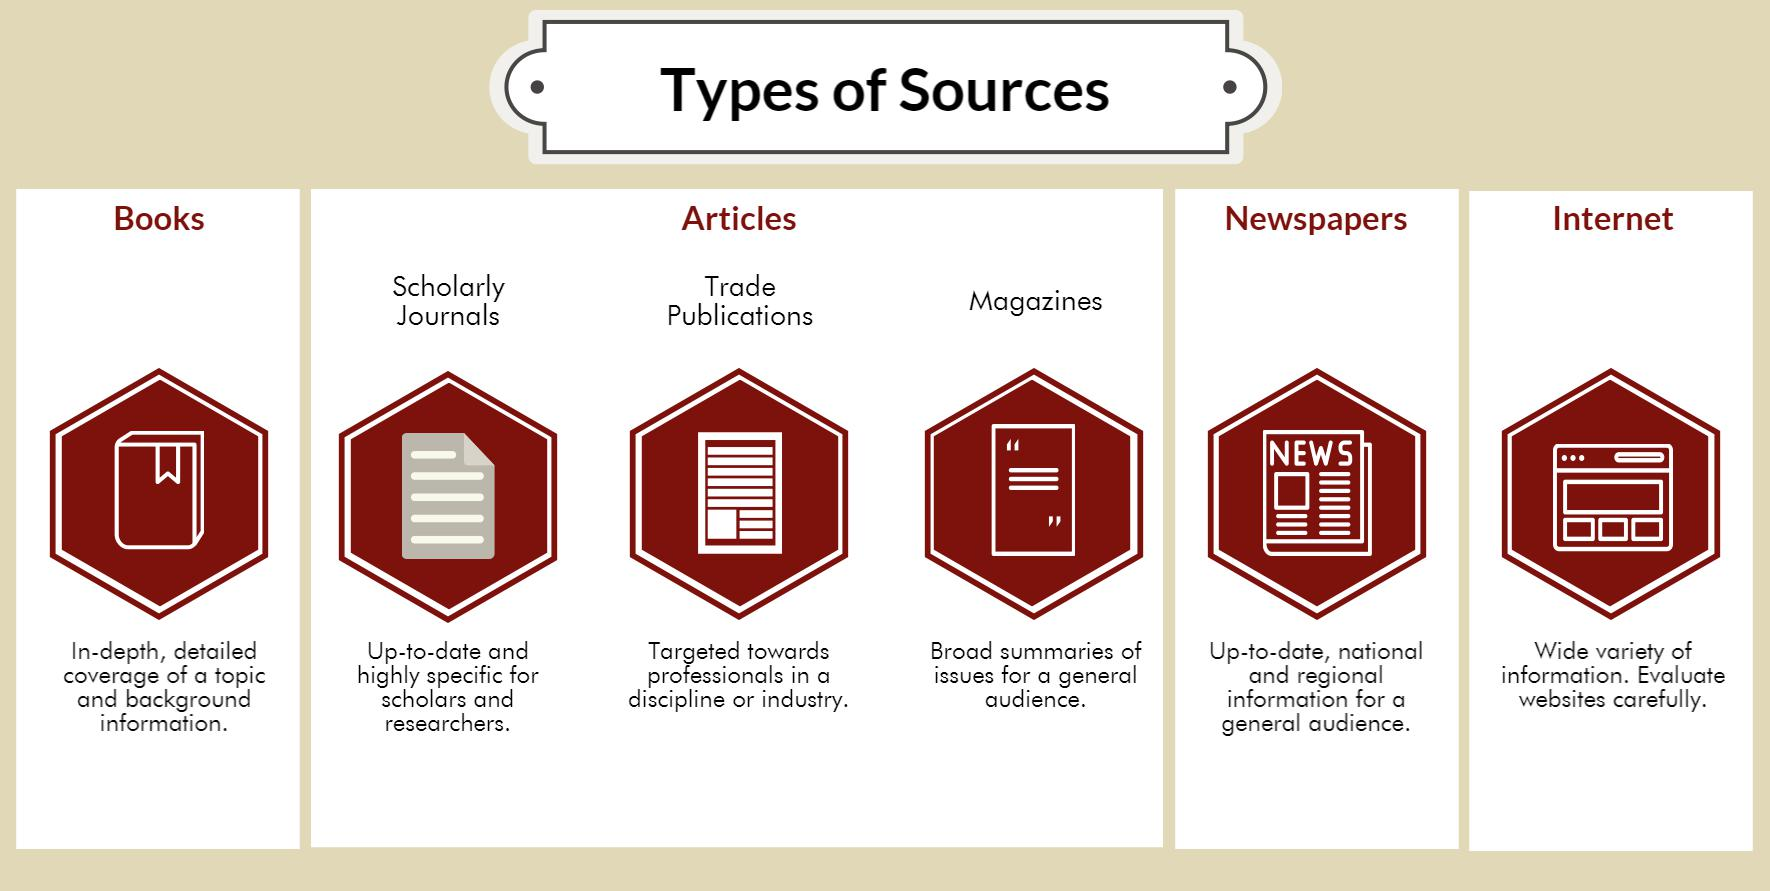 Types of Sources: Books - Provide in-depth, detailed coverage and background information. Articles from academic / scholarly / peer-reviewed journals -  Provide information that is up-to-date and highly specific for scholars, researchers, and professionals.  Articles from trade publications - Provide information targeted to professionals in a particular industry.  Articles from popular magazines - Provide broad summaries of research or issues on a topic for a general audience.  Articles from newspapers - Provide up-to-date, national and regional information on a current topic. Internet sources -  Can be useful for a variety of information needs, but each website will require critical evaluation.